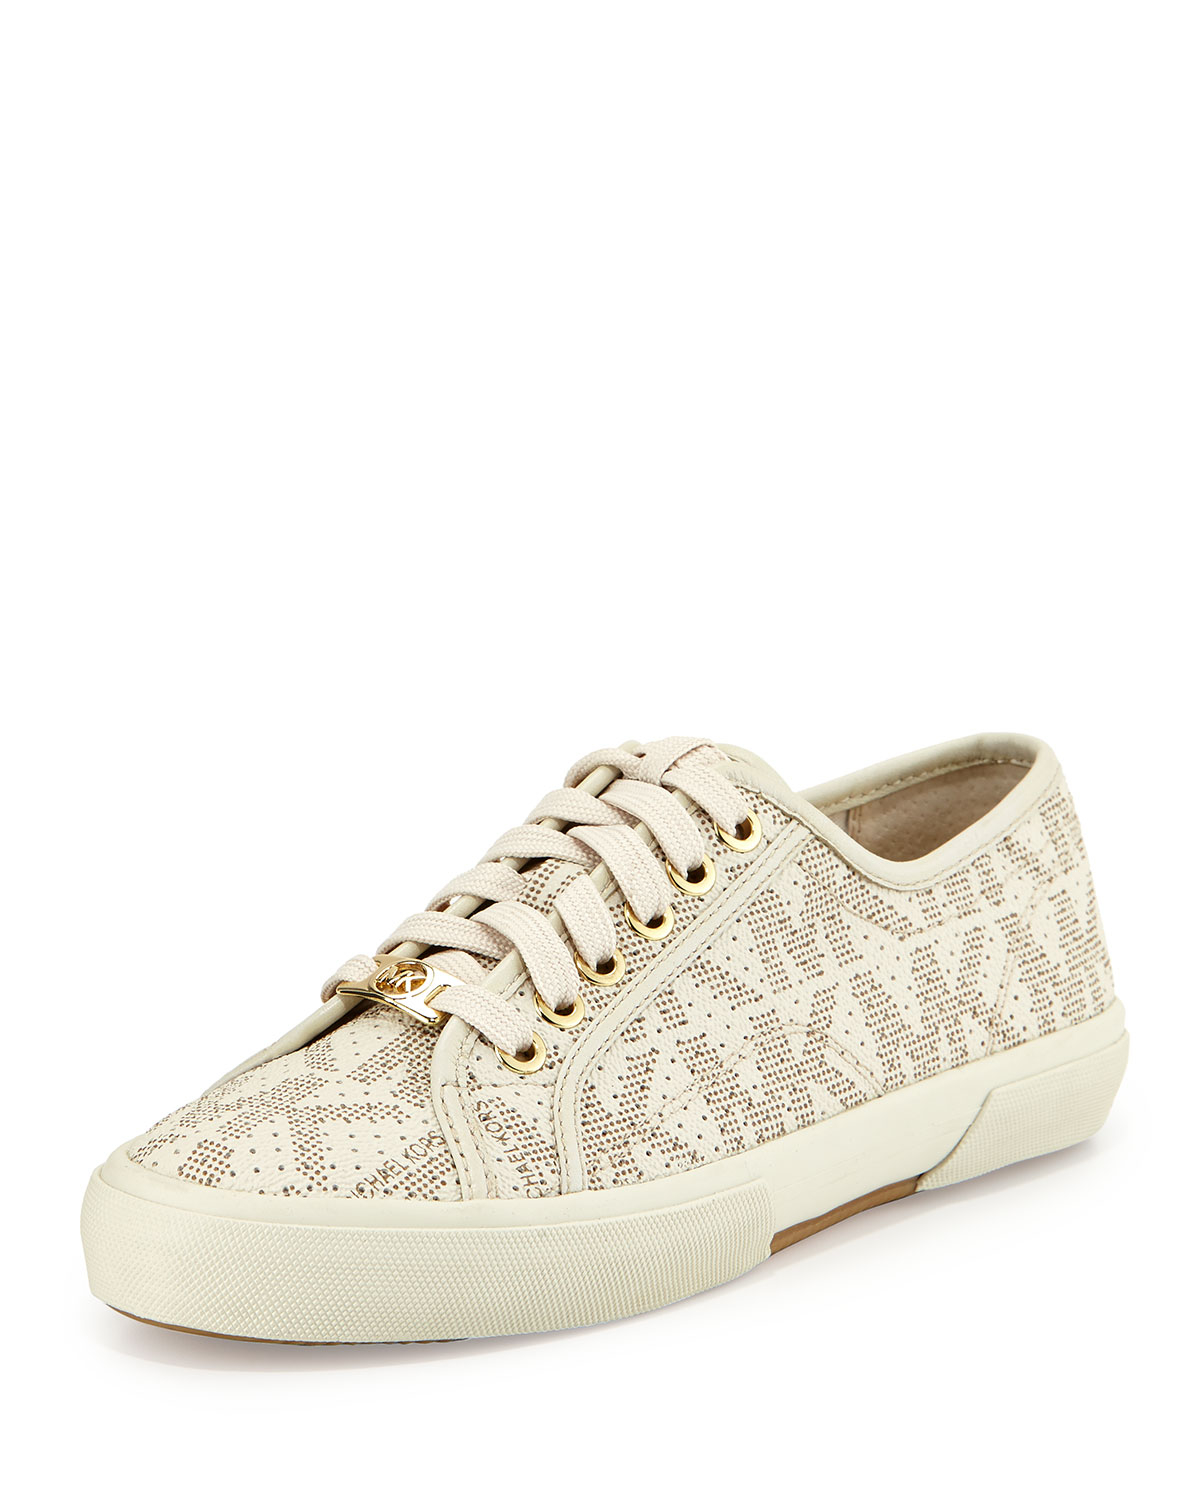 michael michael kors boerum lace up low top sneakers in white lyst. Black Bedroom Furniture Sets. Home Design Ideas